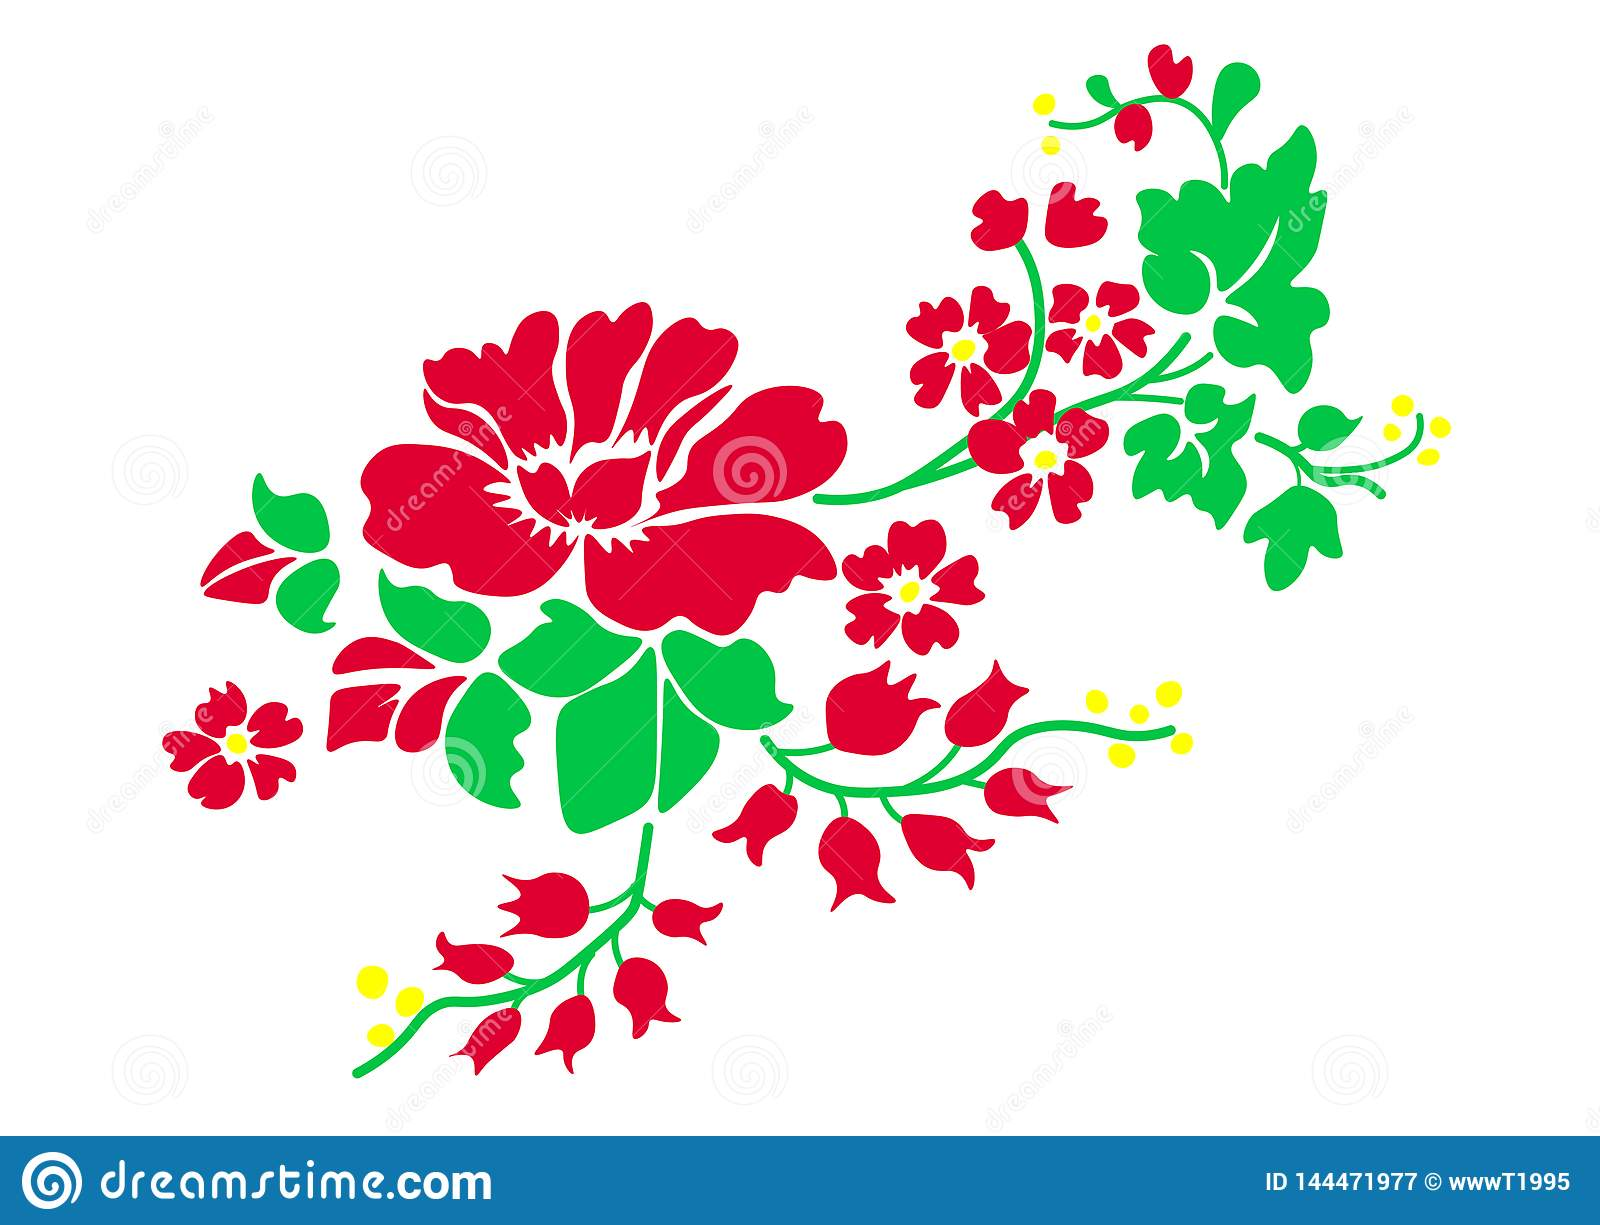 Web. Vector illustration of red roses isolated on white